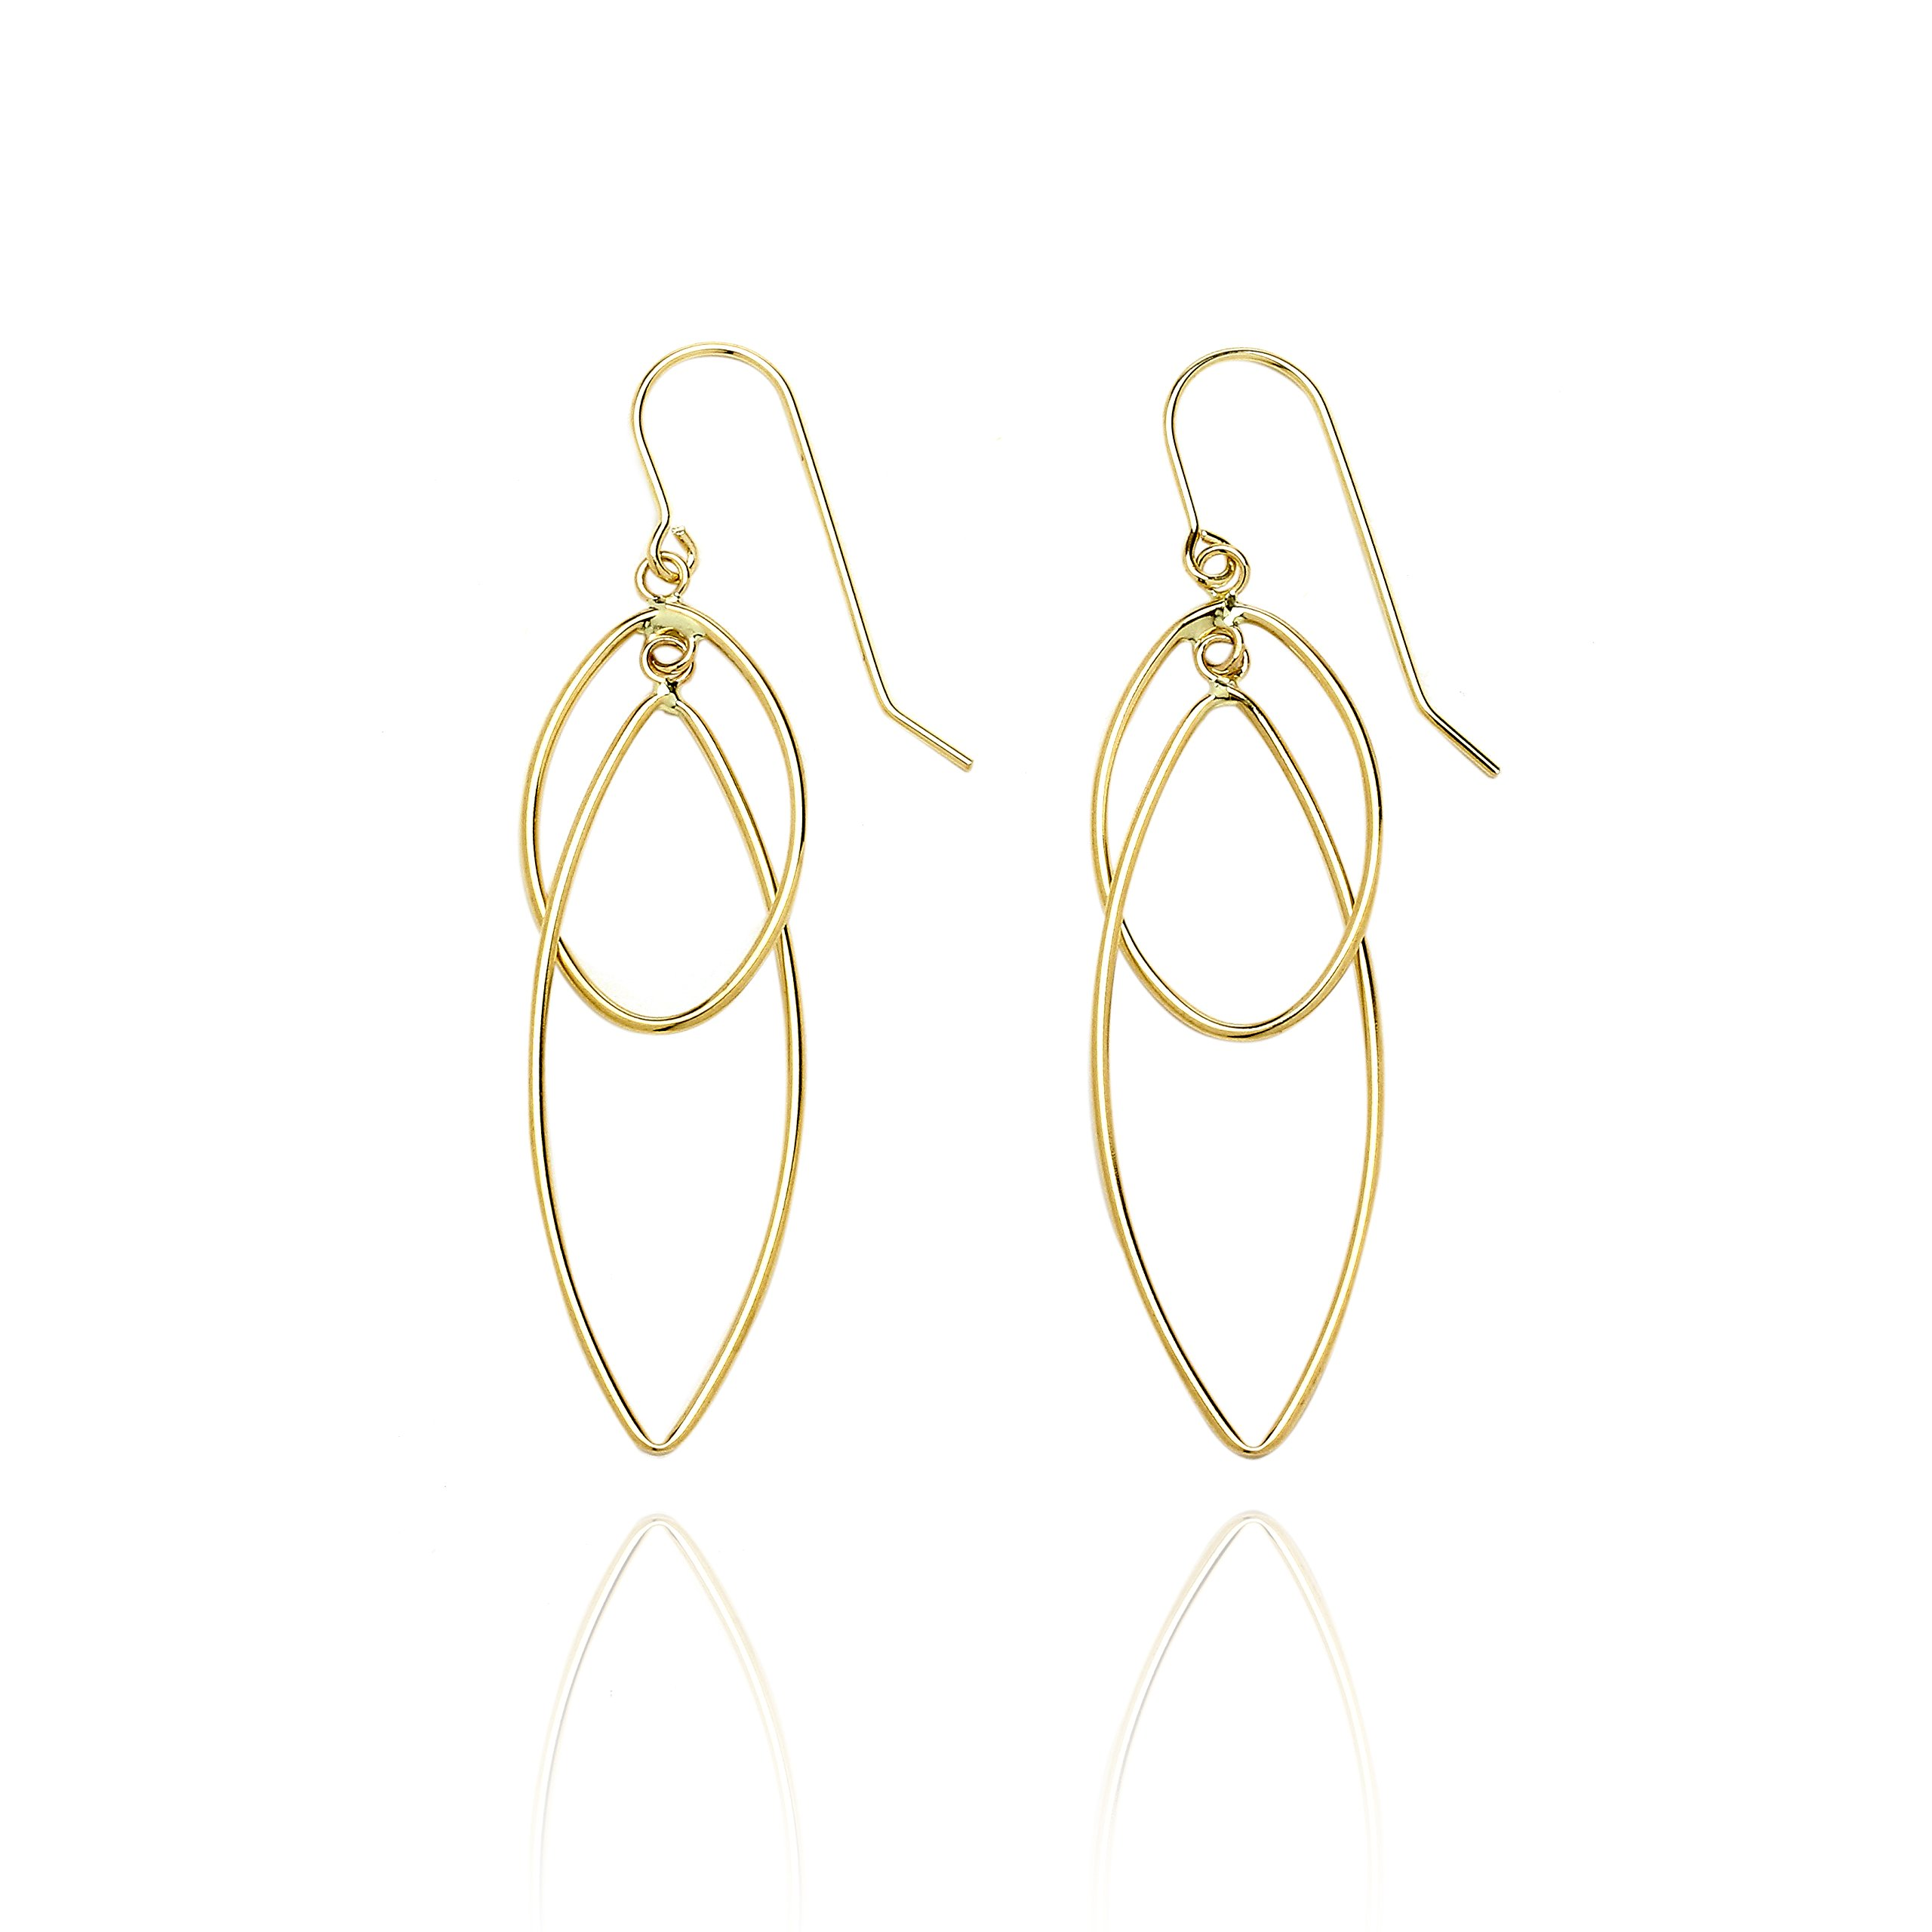 14k Yellow Gold High Polished Pointing Oval Earring with Fish Hook in Gift Box for Women and Teen Girls